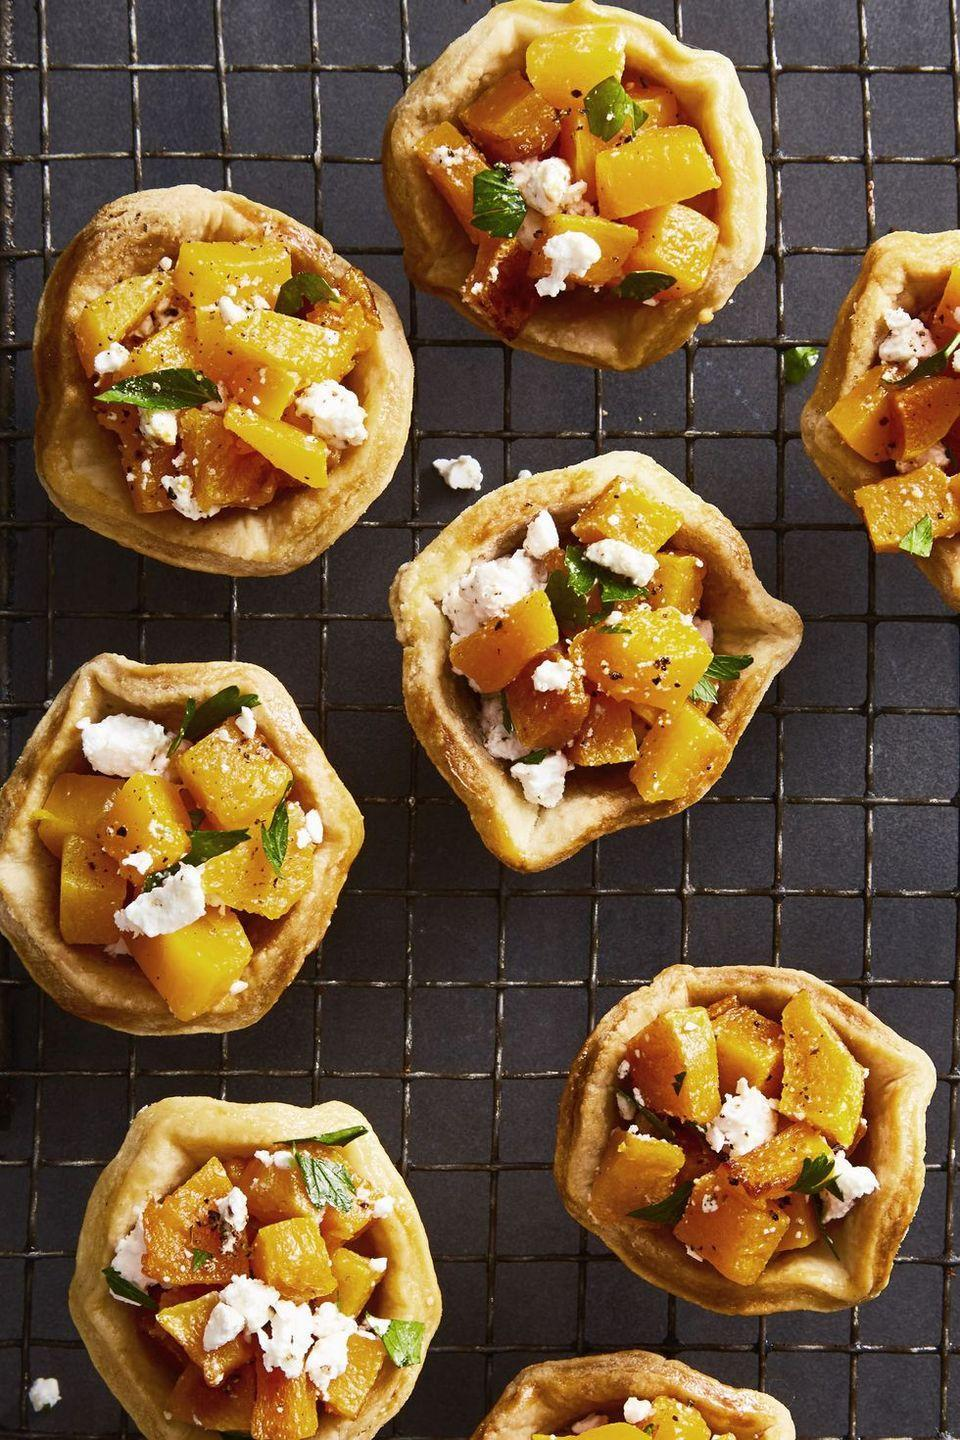 """<p>These little two-bite tartlets will feel especially personal and cute on a plate that's heaping with other sides. </p><p><strong><em>Get the recipe at <a href=""""https://www.goodhousekeeping.com/food-recipes/a46642/butternut-squash-and-feta-tartlets-recipe/"""" rel=""""nofollow noopener"""" target=""""_blank"""" data-ylk=""""slk:Good Housekeeping"""" class=""""link rapid-noclick-resp"""">Good Housekeeping</a>. </em></strong><br></p>"""